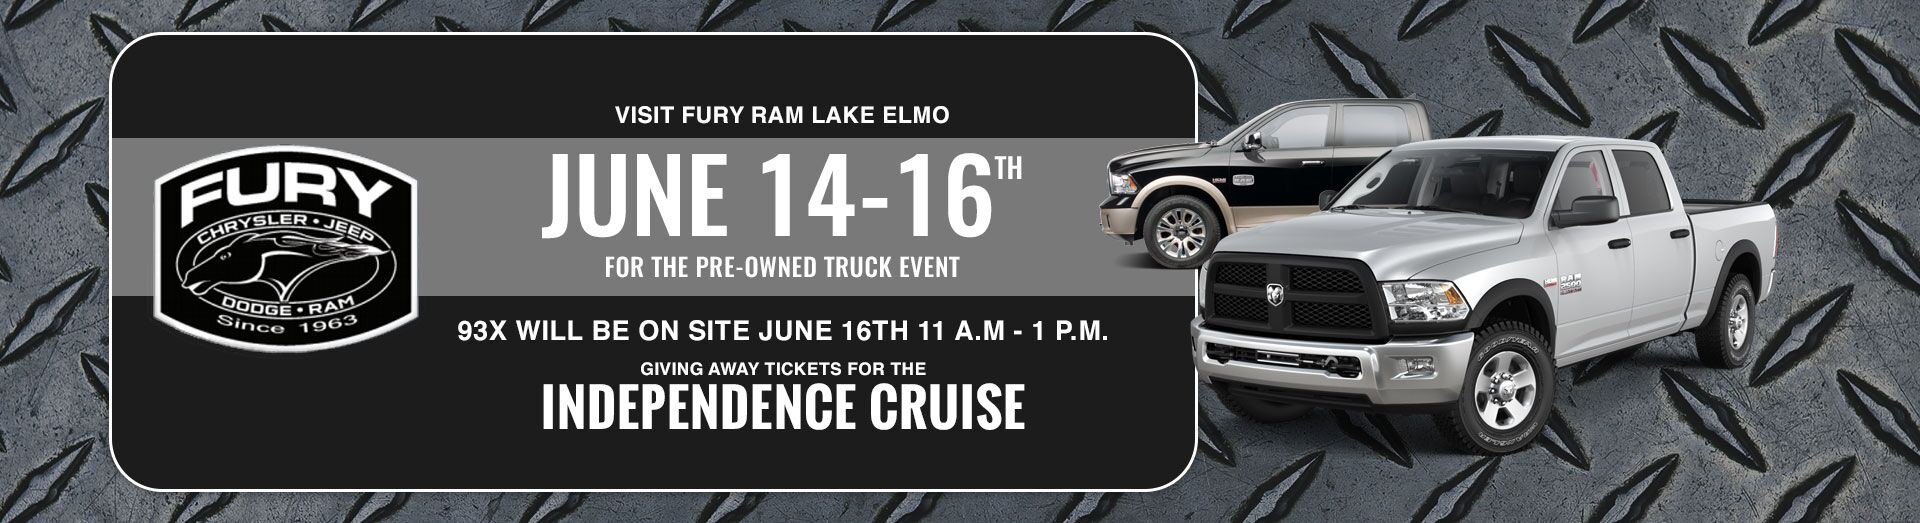 Pre-Owned Truck Event